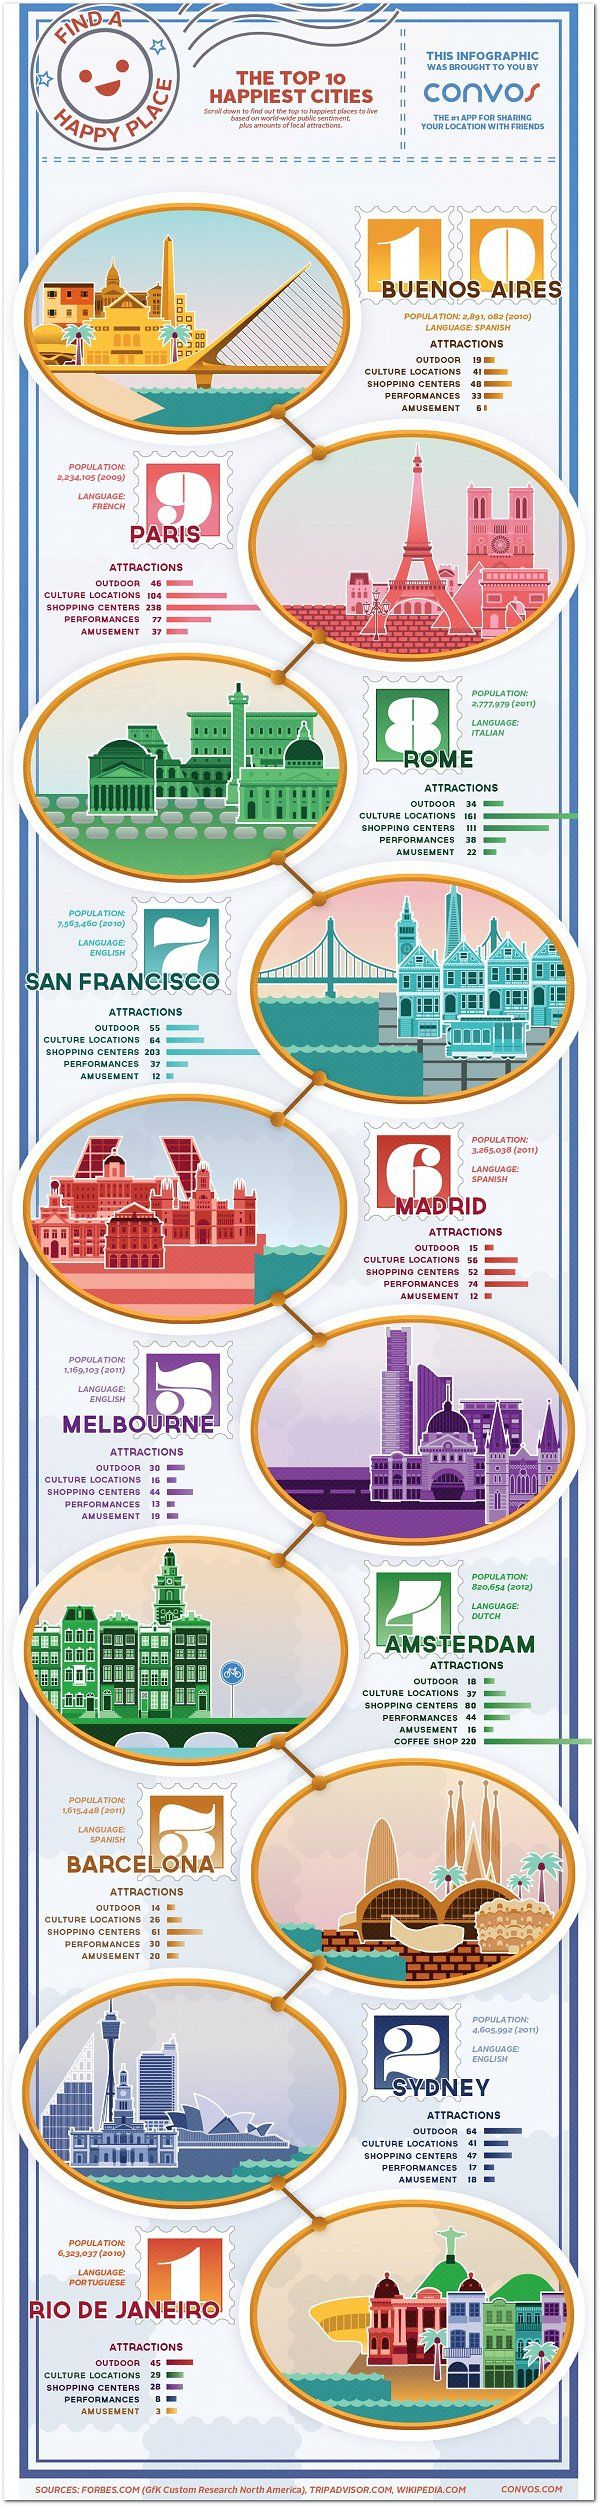 The 10 happiest cities in the world